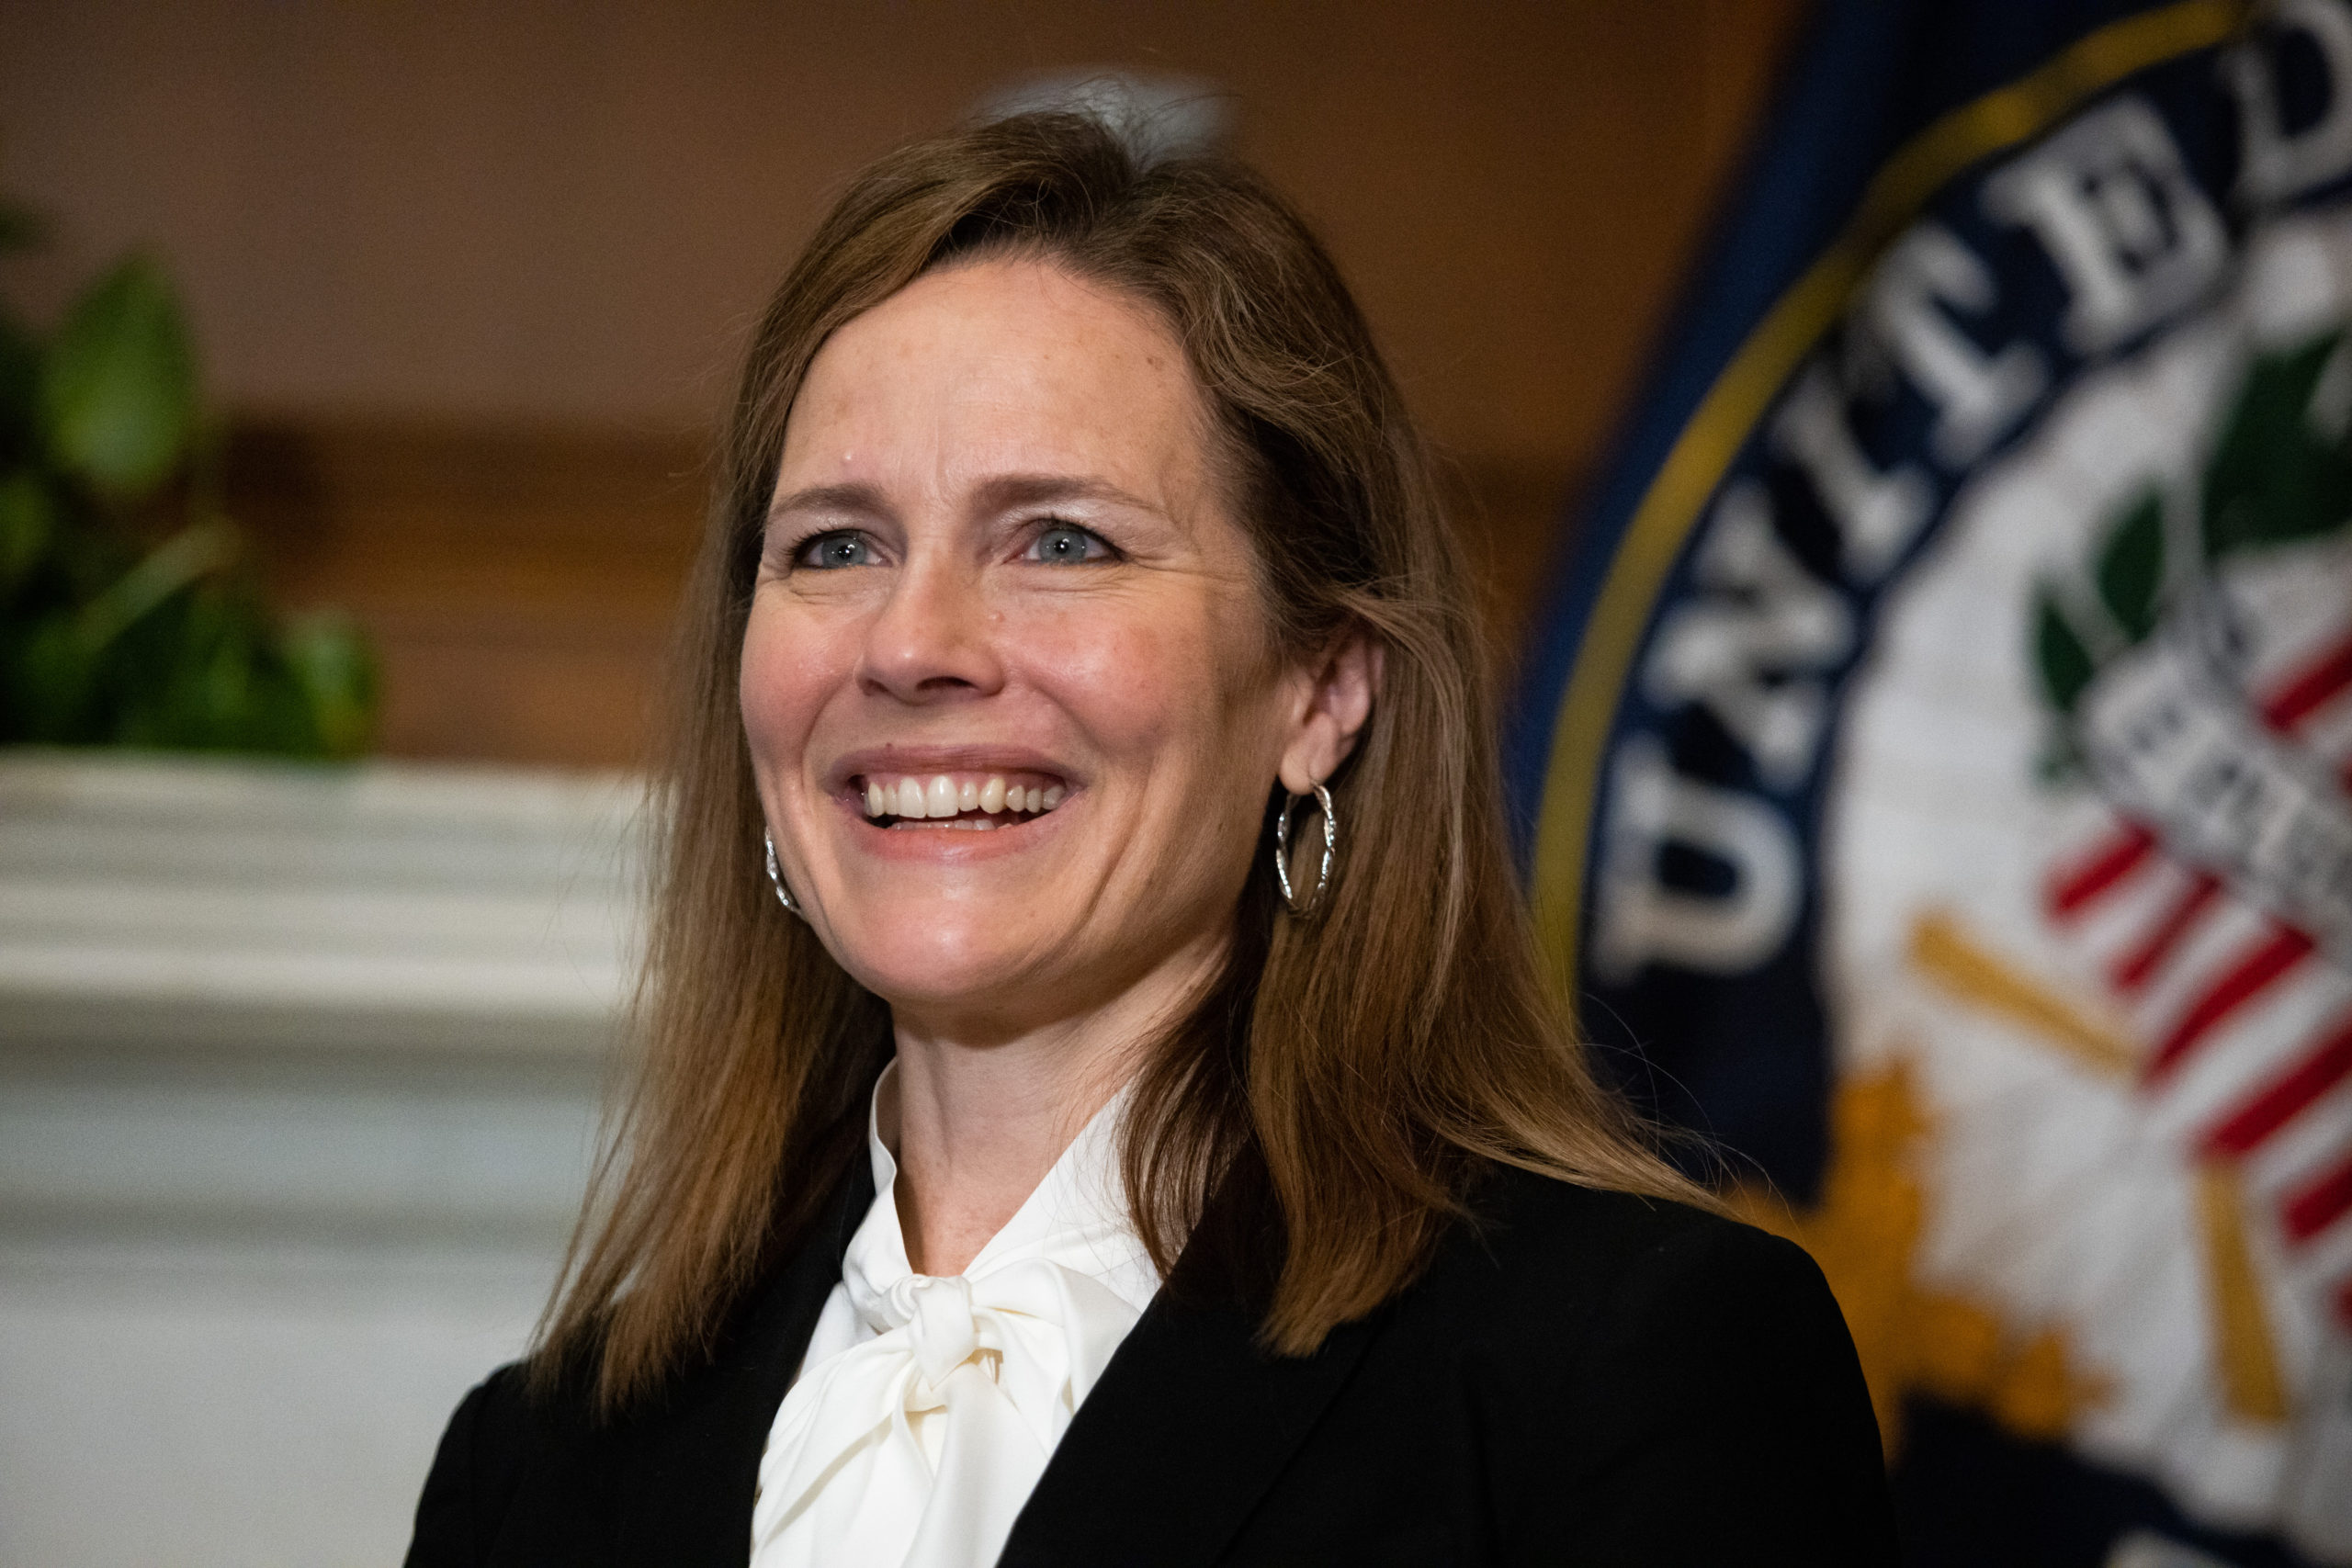 WASHINGTON, DC - OCTOBER 1: Seventh U.S. Circuit Court Judge Amy Coney Barrett, President Trump's pick for the Supreme Court, meets with Sen. Roger Wicker (R-MS) in the Mansfield Room of the U.S. Capitol on October 1, 2020 in Washington, DC. Barrett is meeting with senators ahead of her confirmation hearing on October 12, less than a month before the general election. (Graeme Jennings-Pool/Getty Images)